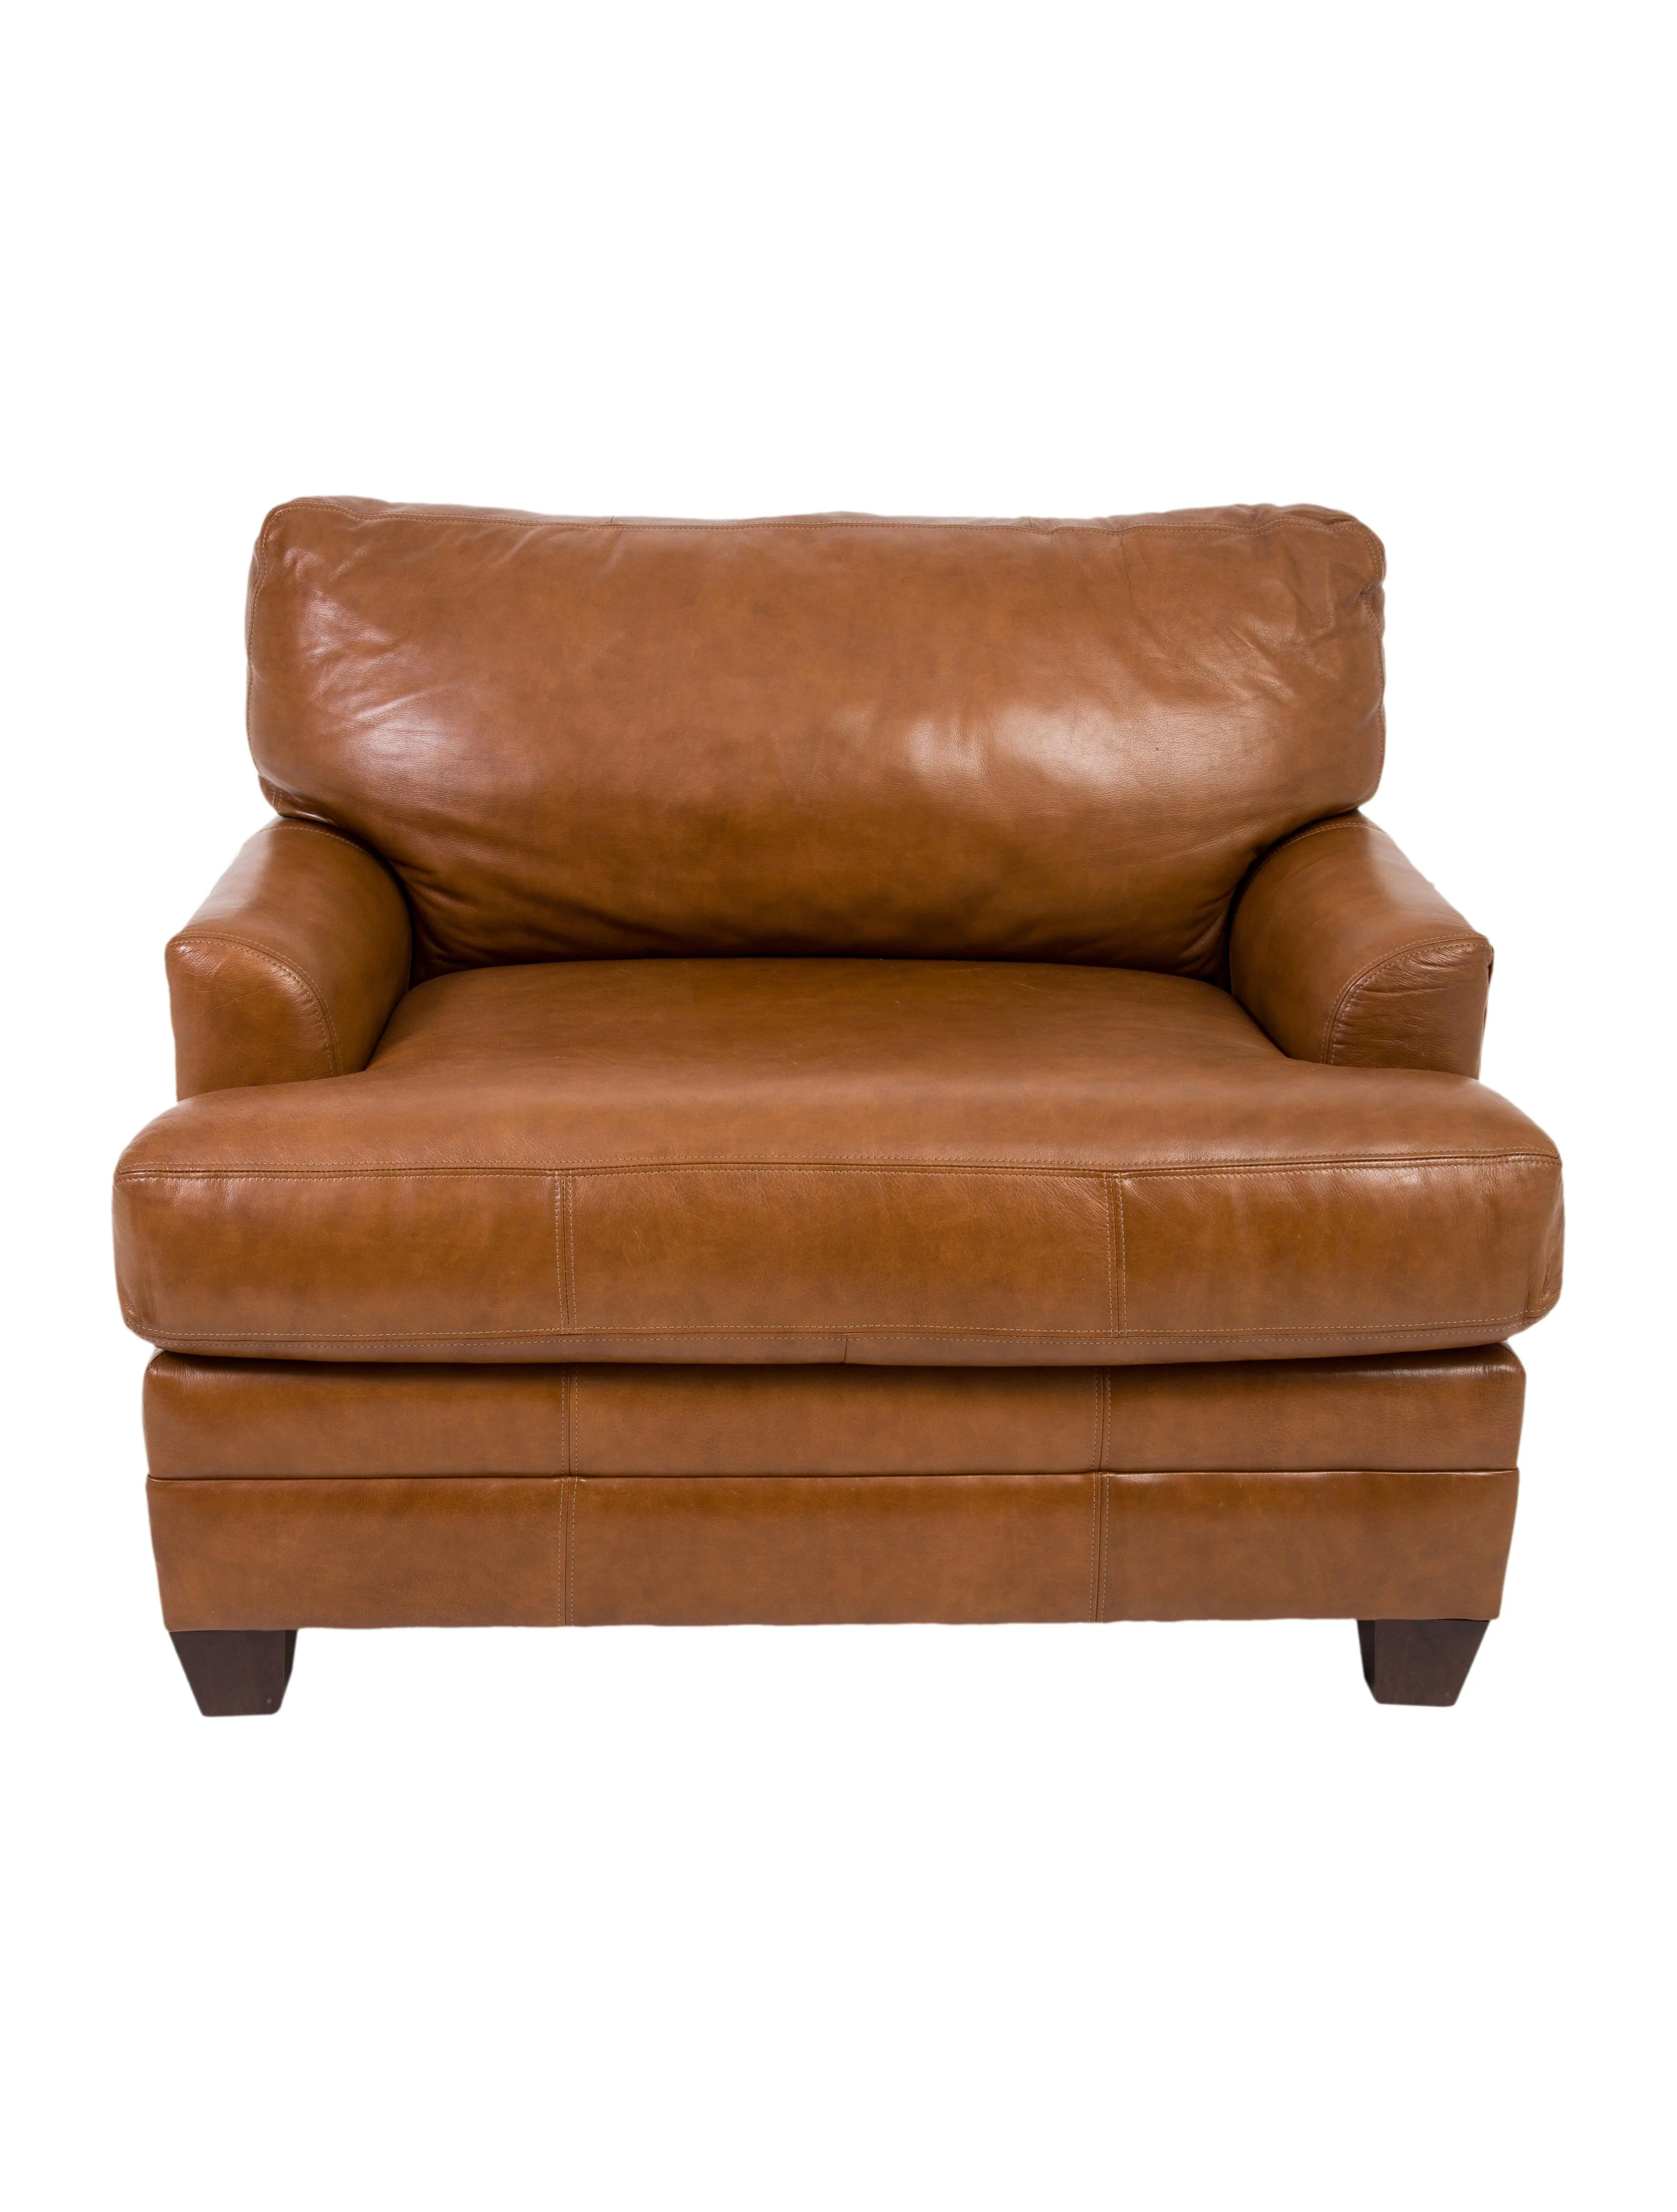 bassett furniture chairs track chair extreme leather lounge chair20351